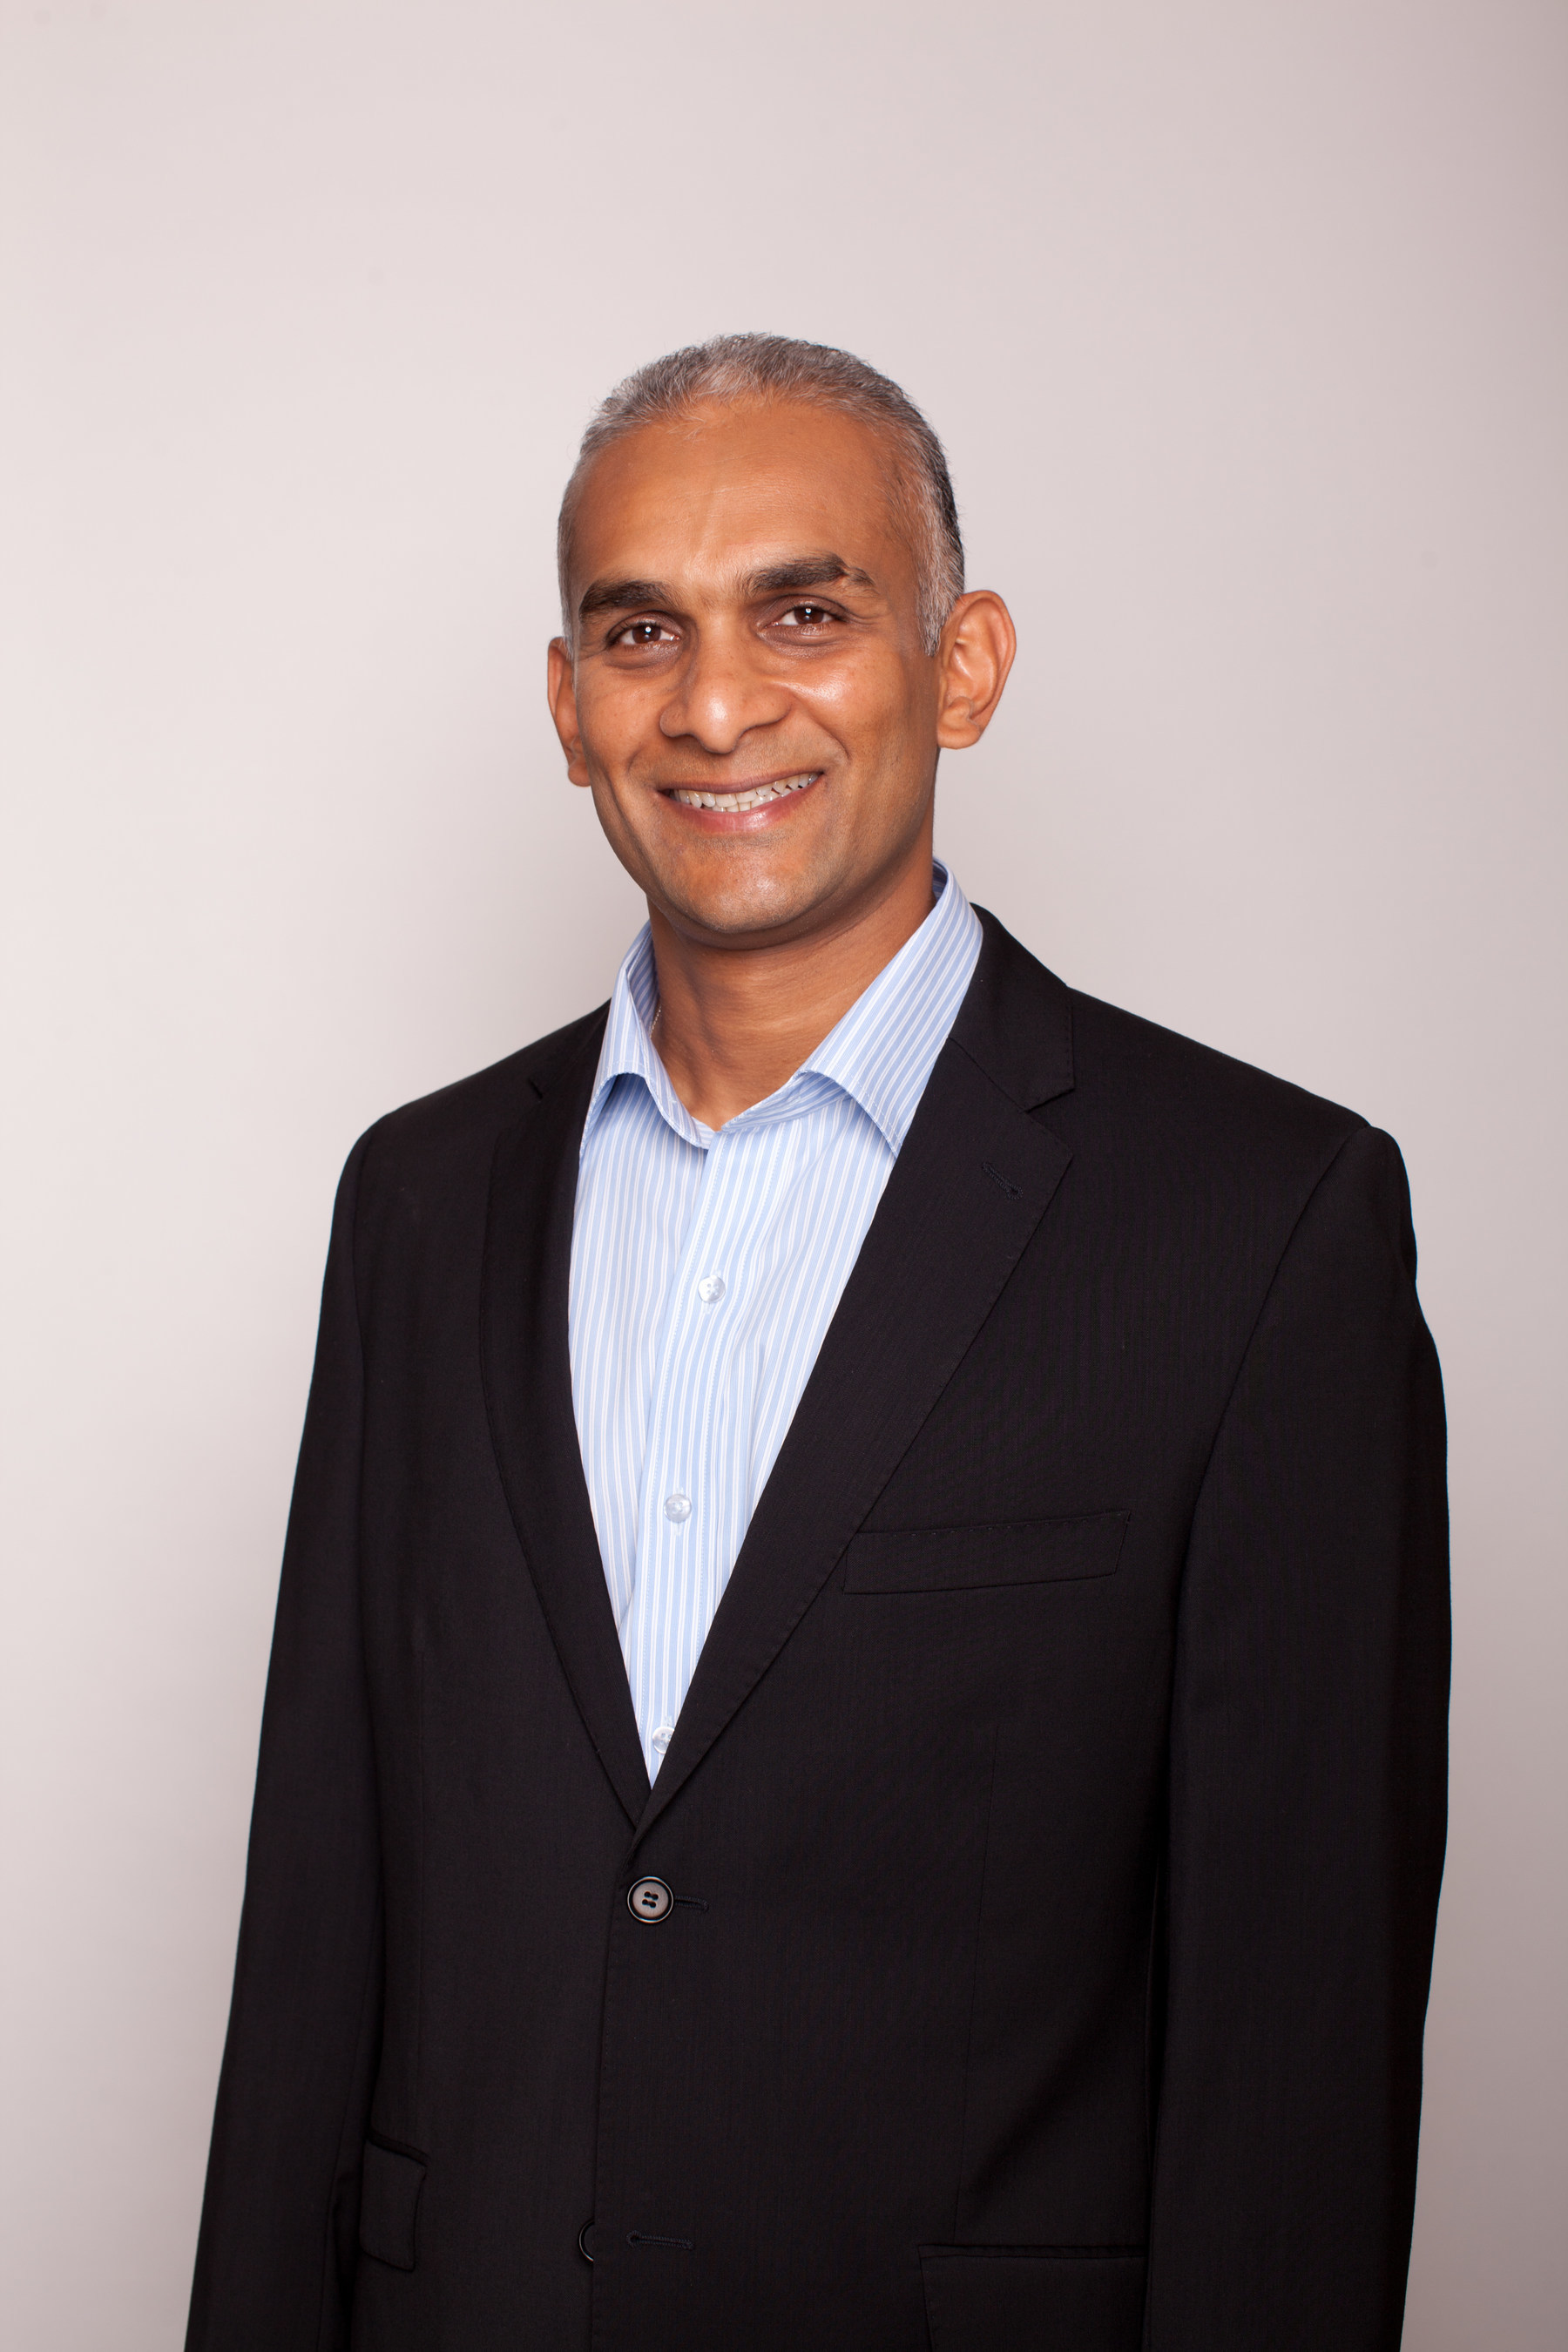 Roshan Mendis appointed senior vice president of Sabre Travel Network, Asia Pacific